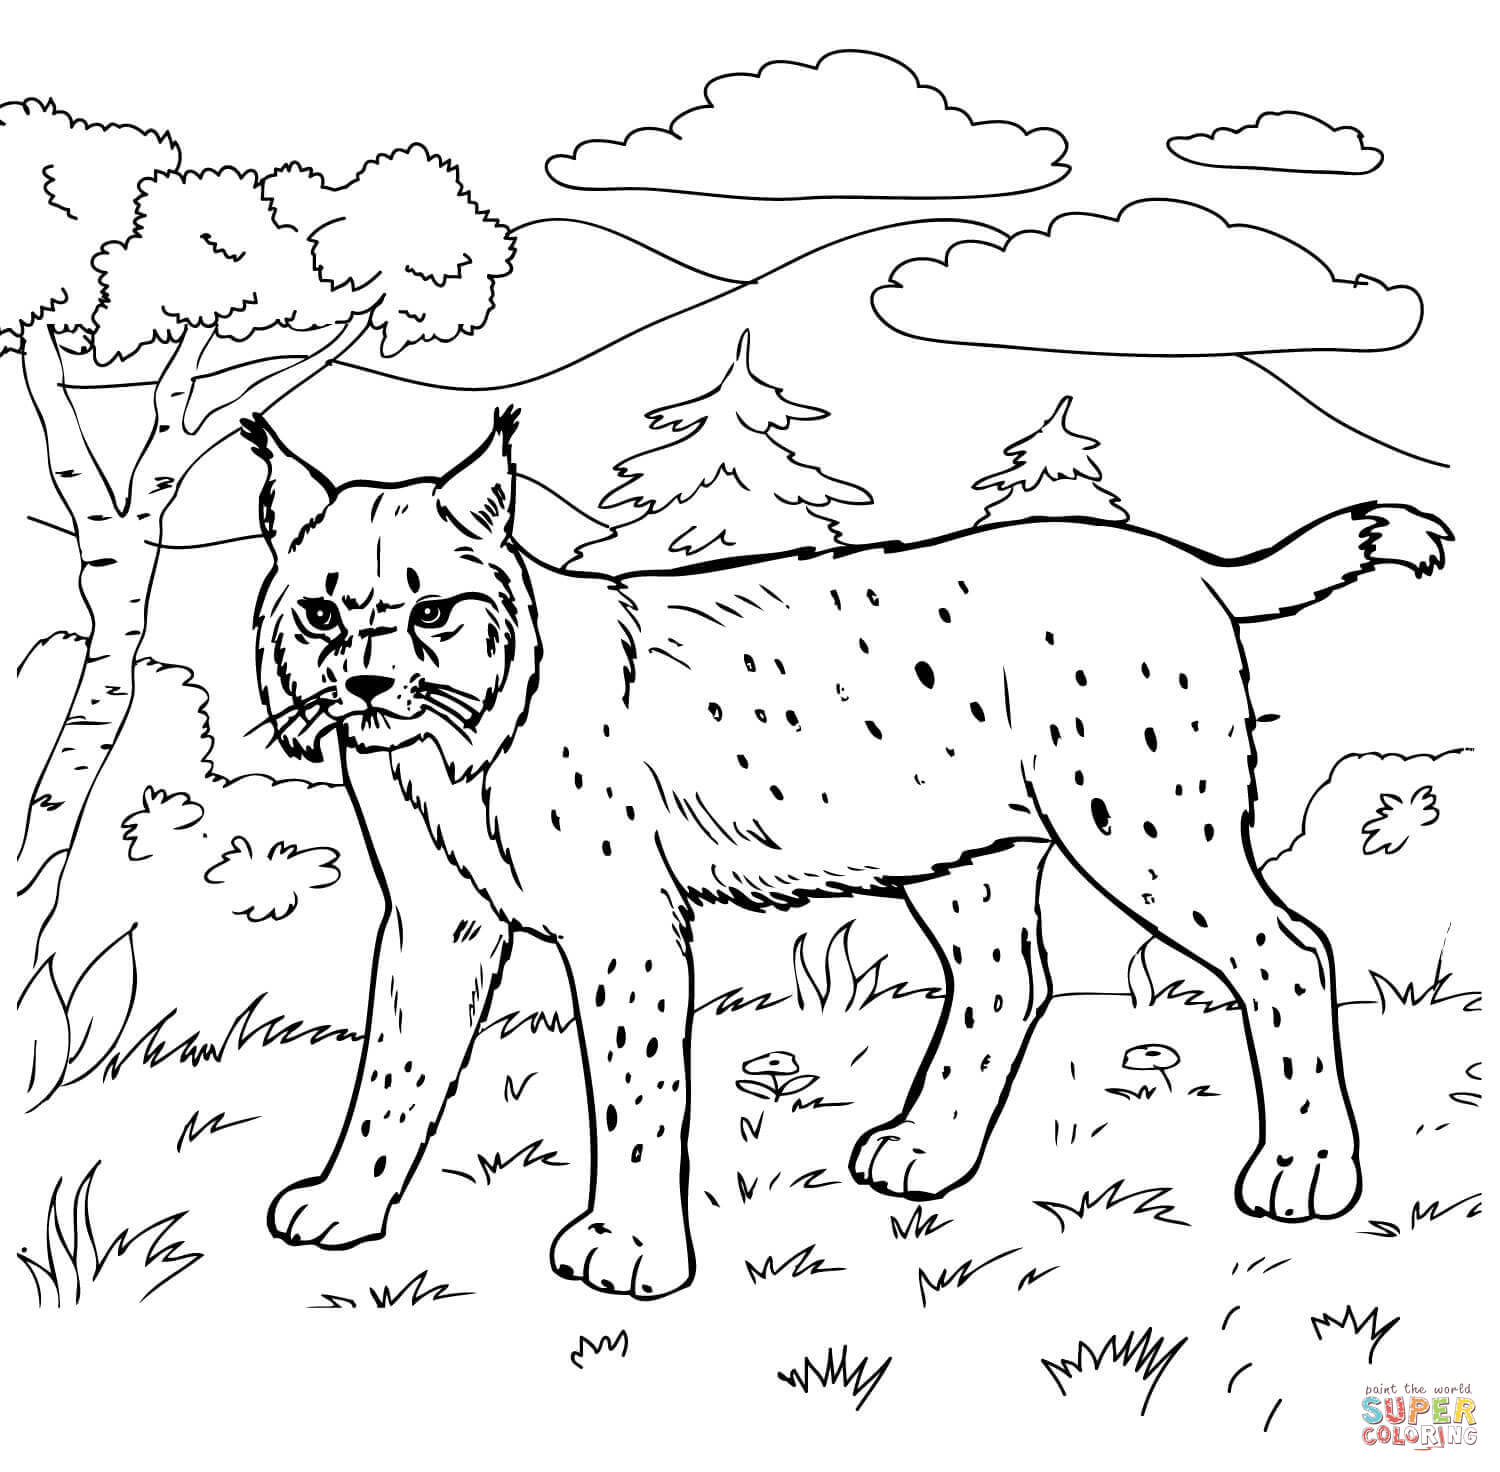 Bobcat clipart realistic In Bobcat Bobcats pages Coloring